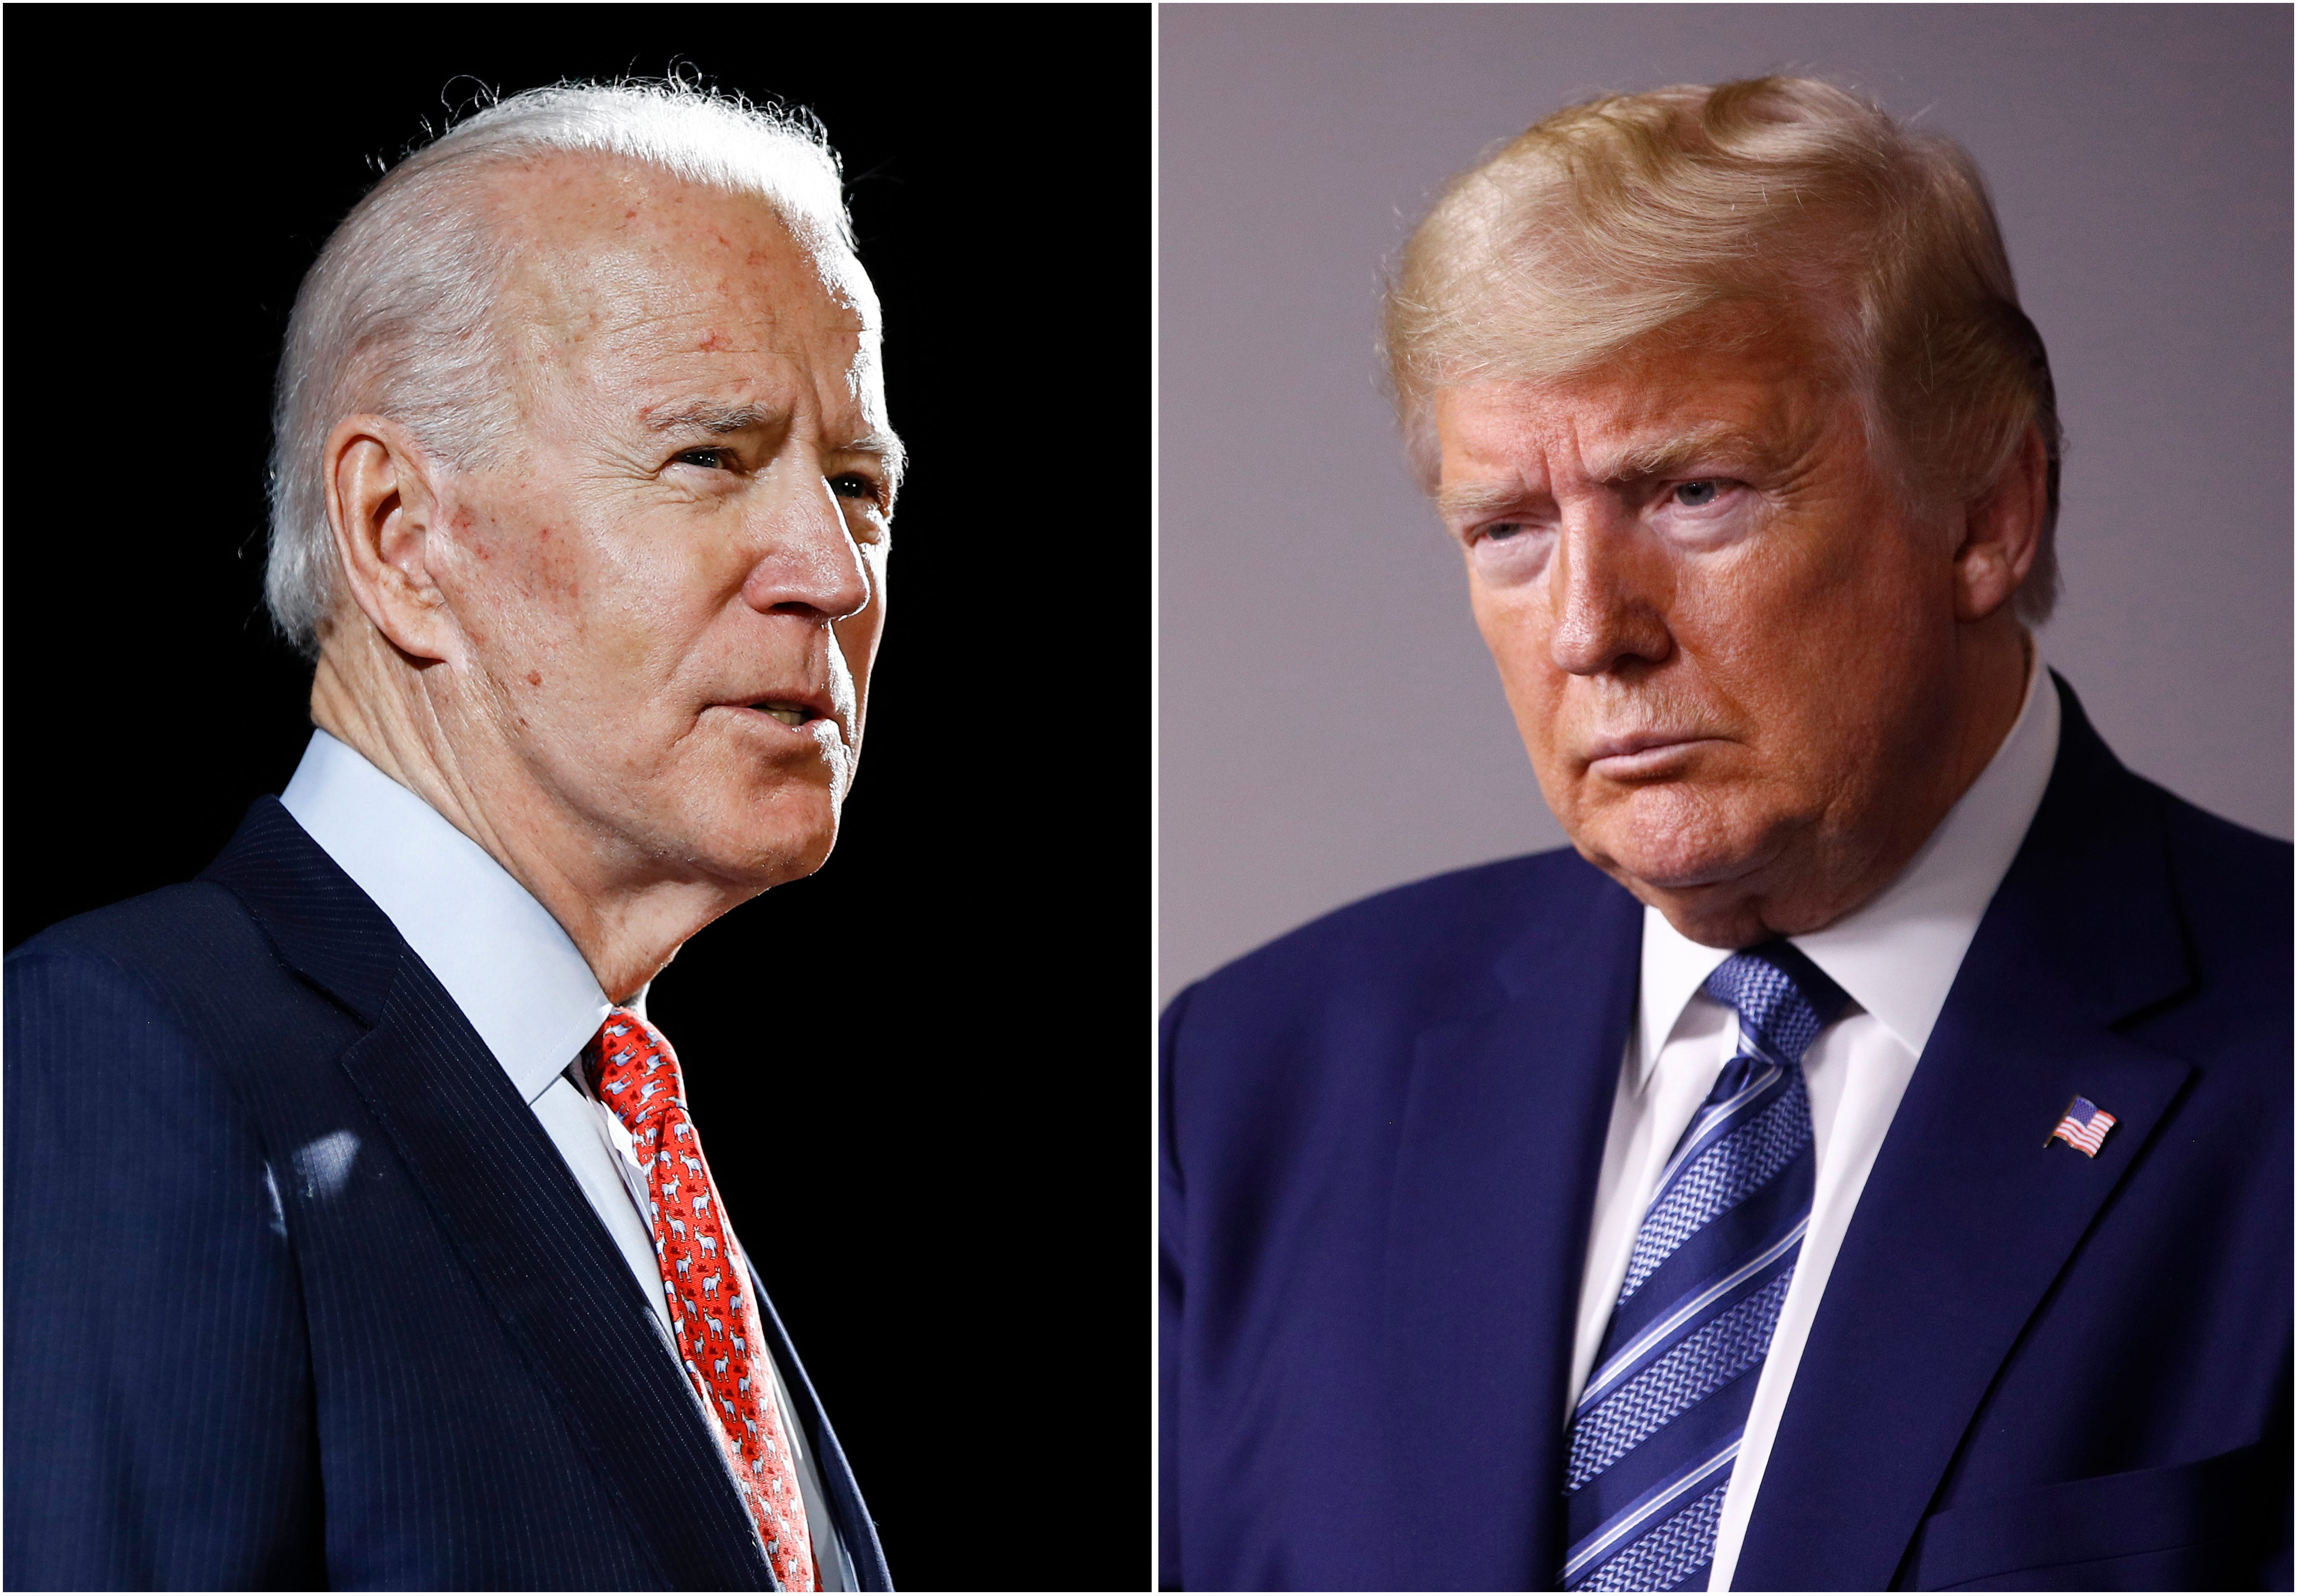 Donald Trump and Joe Biden vs. Facebook and Twitter: Why Section 230 could get repealed in 2021